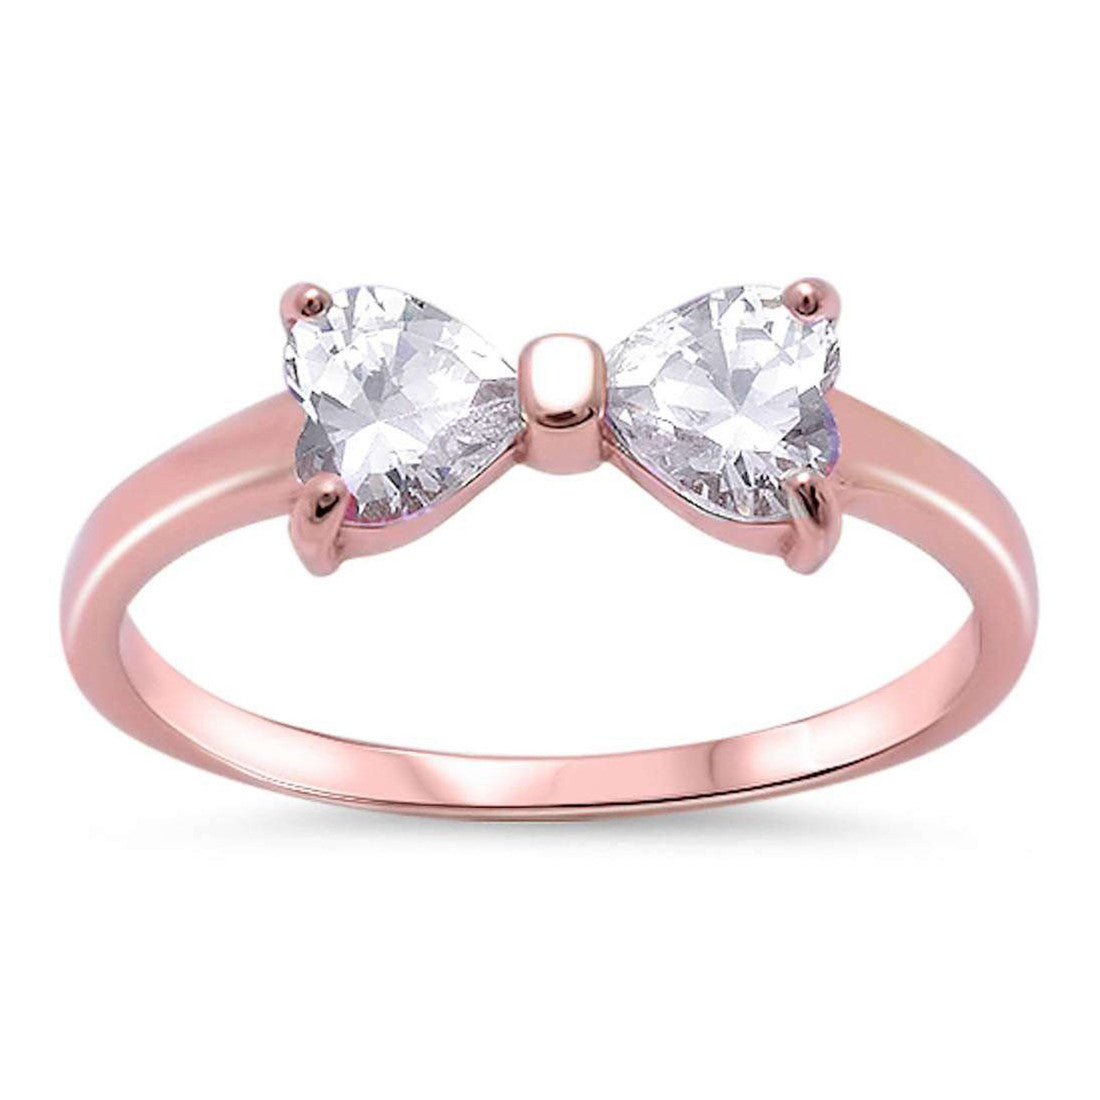 image gold pink products wife jewelry filled heart girlfriend promise wedding rings ring white romantic or womens for opal product s engagement women